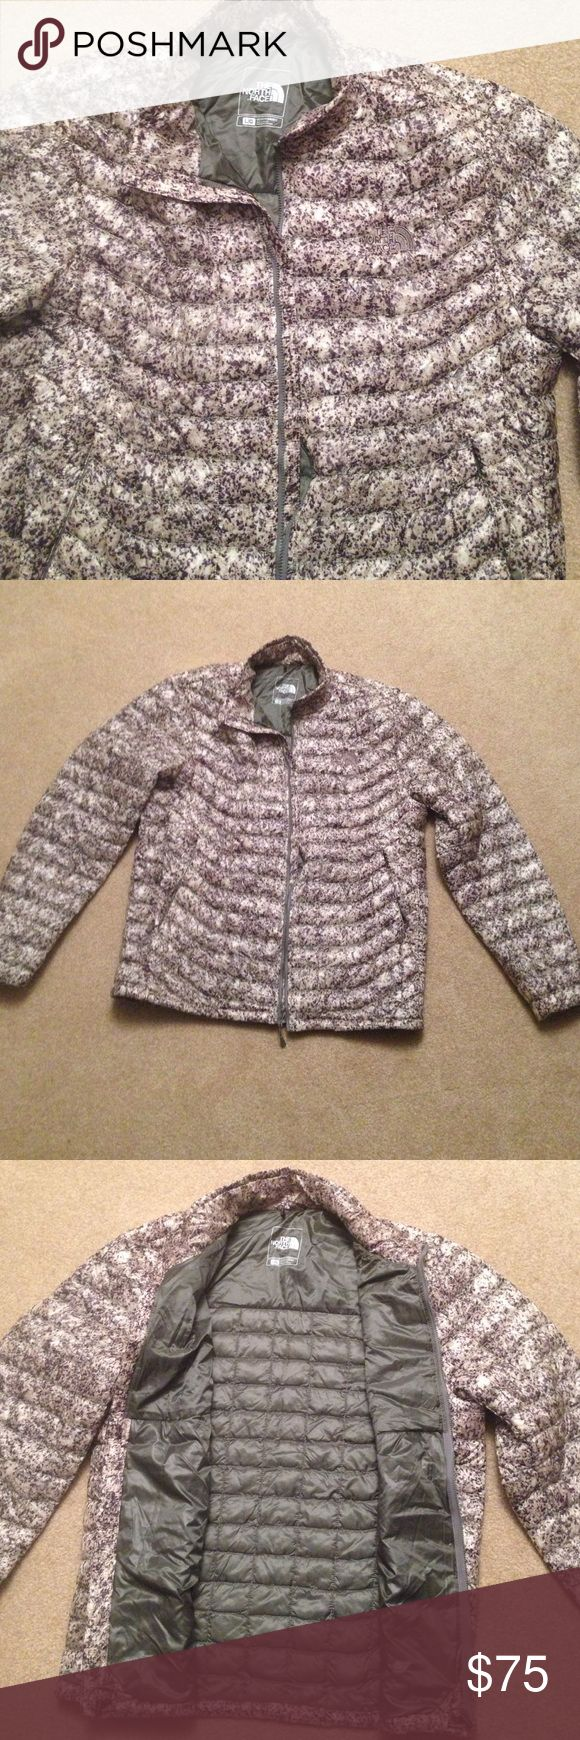 NWOT ☃️North face Thermoball  Jacket Never Worn North face men's Thermoball Jacket   Very nice black/grey pattern North Face Jackets & Coats Puffers